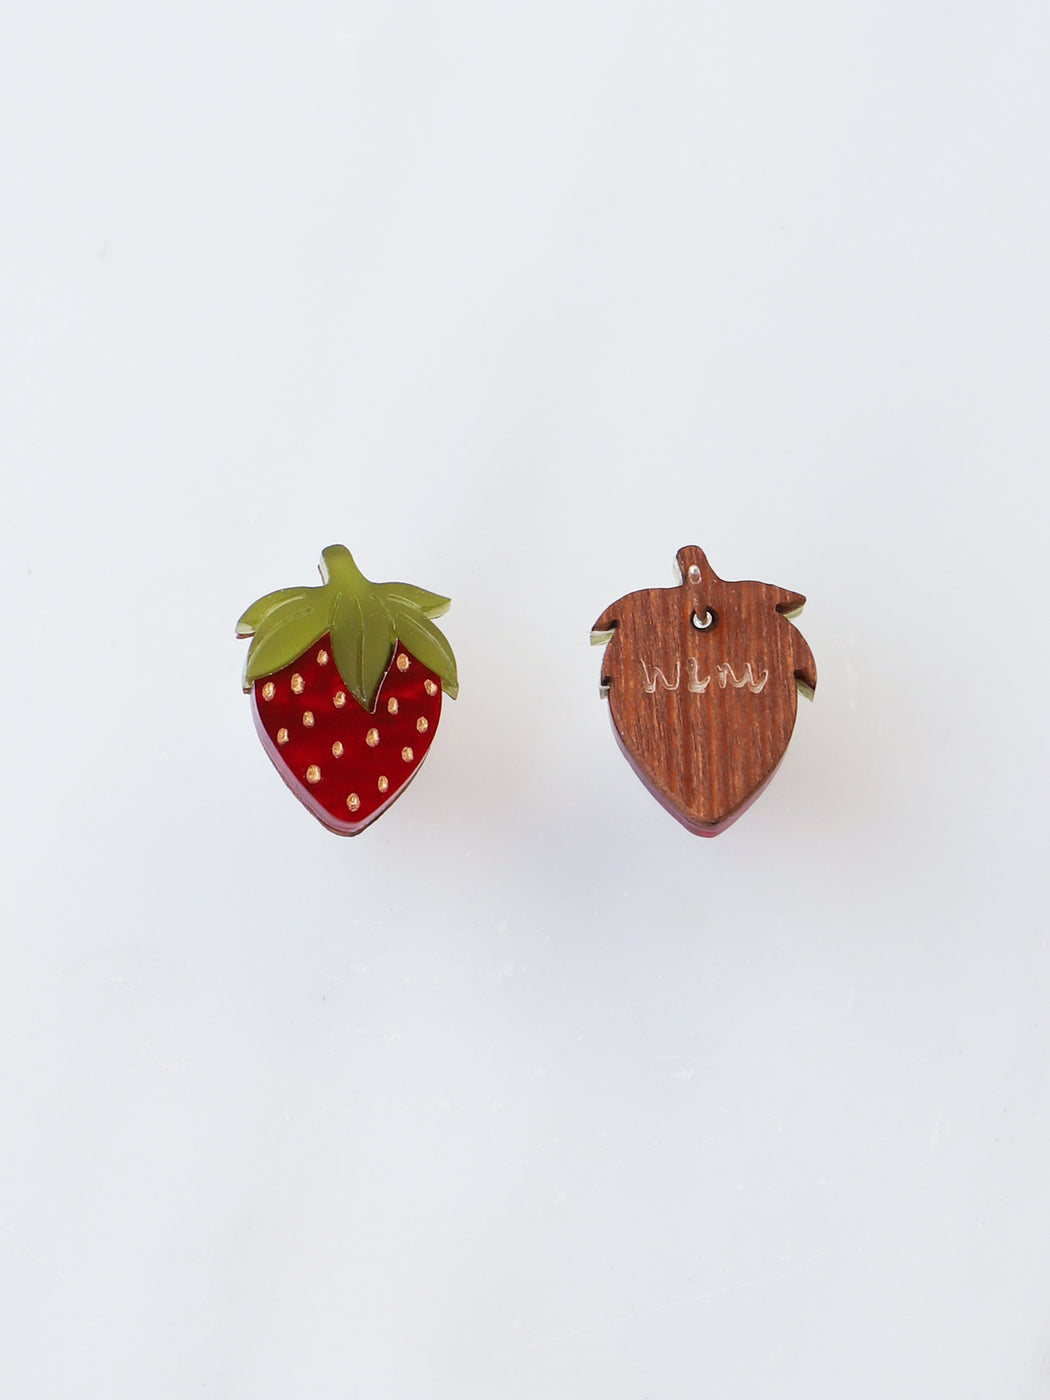 Mini strawberry studs made from acrylic and wood with hand-inked details. Statement jewellery handmade in the U.K. by Wolf & Moon.